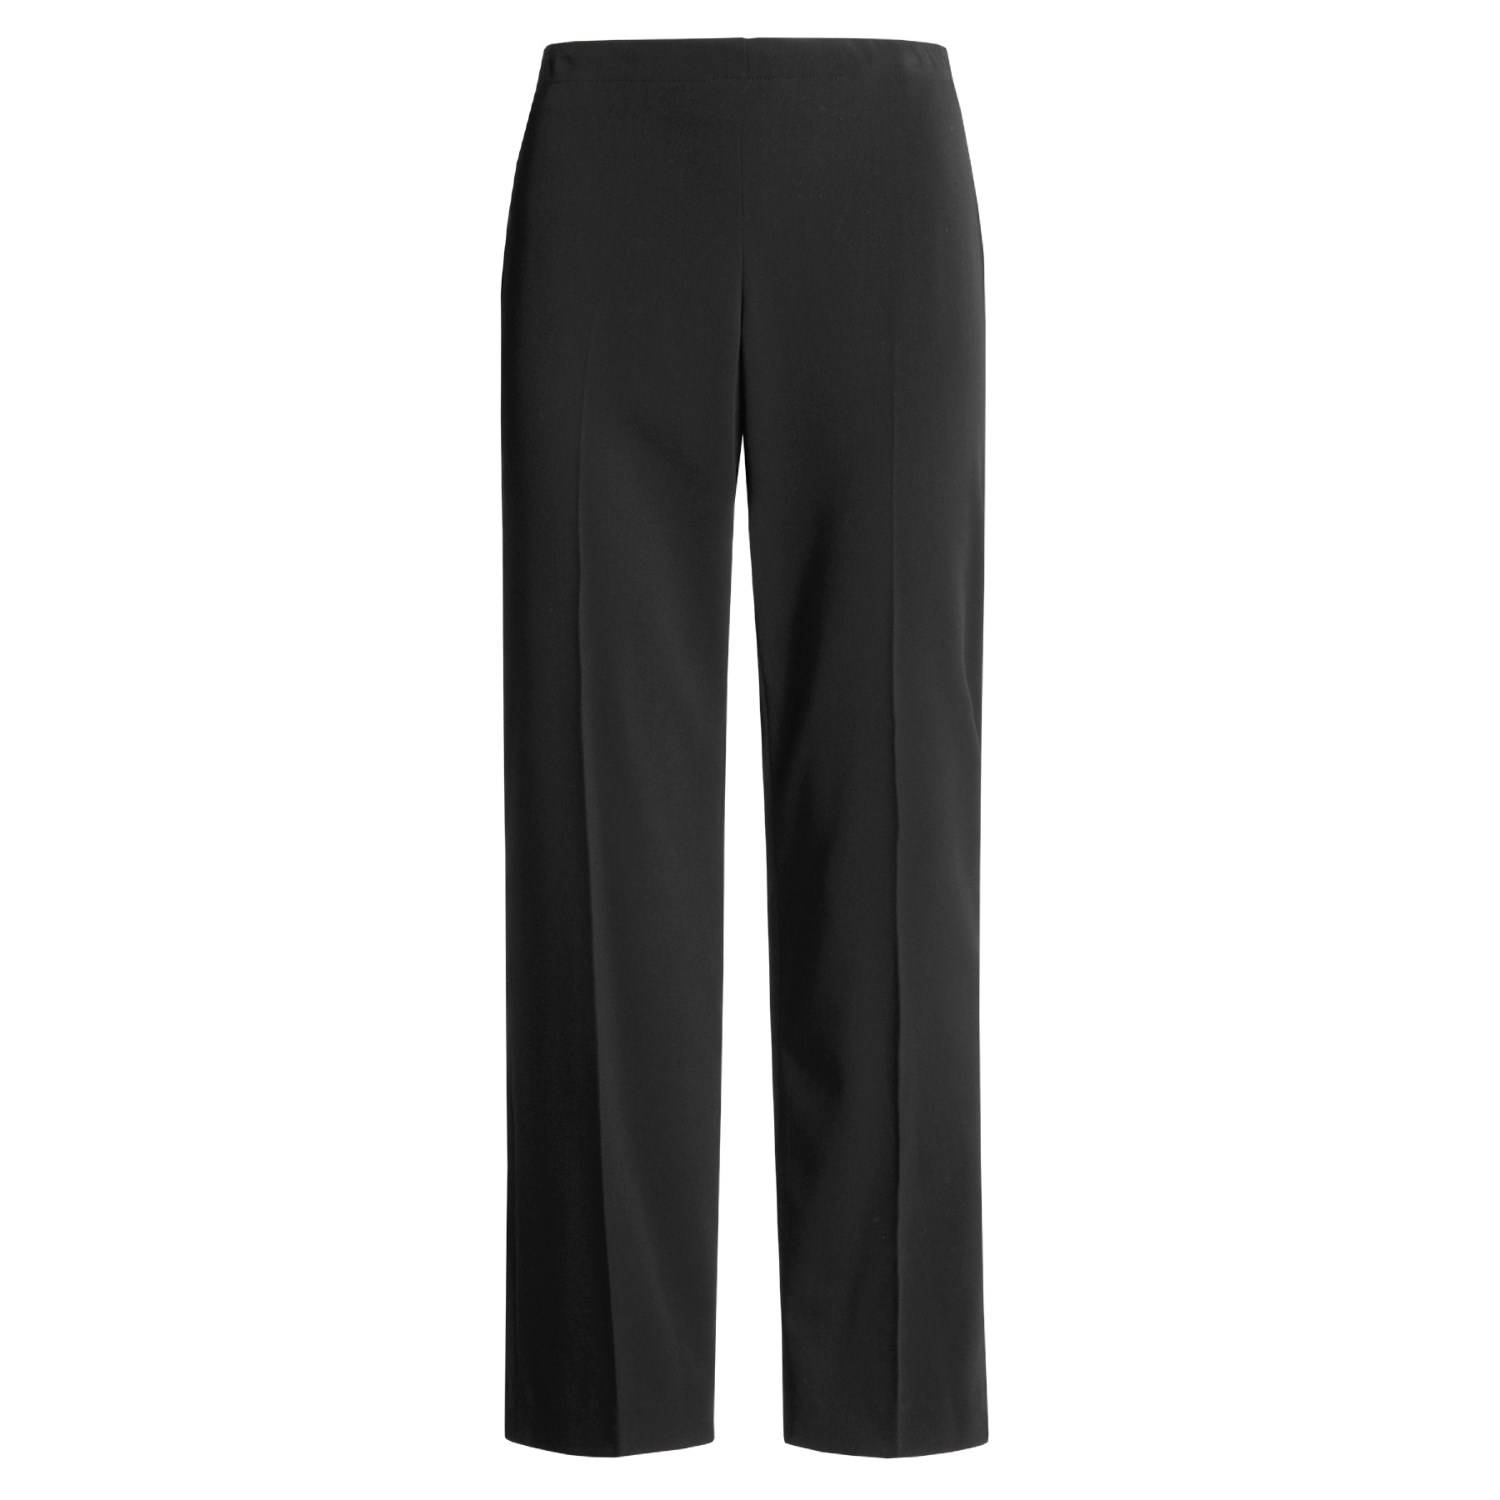 Simple Work Wardrobe Dress Pants Review  The Fashion Frugalista39s Blog